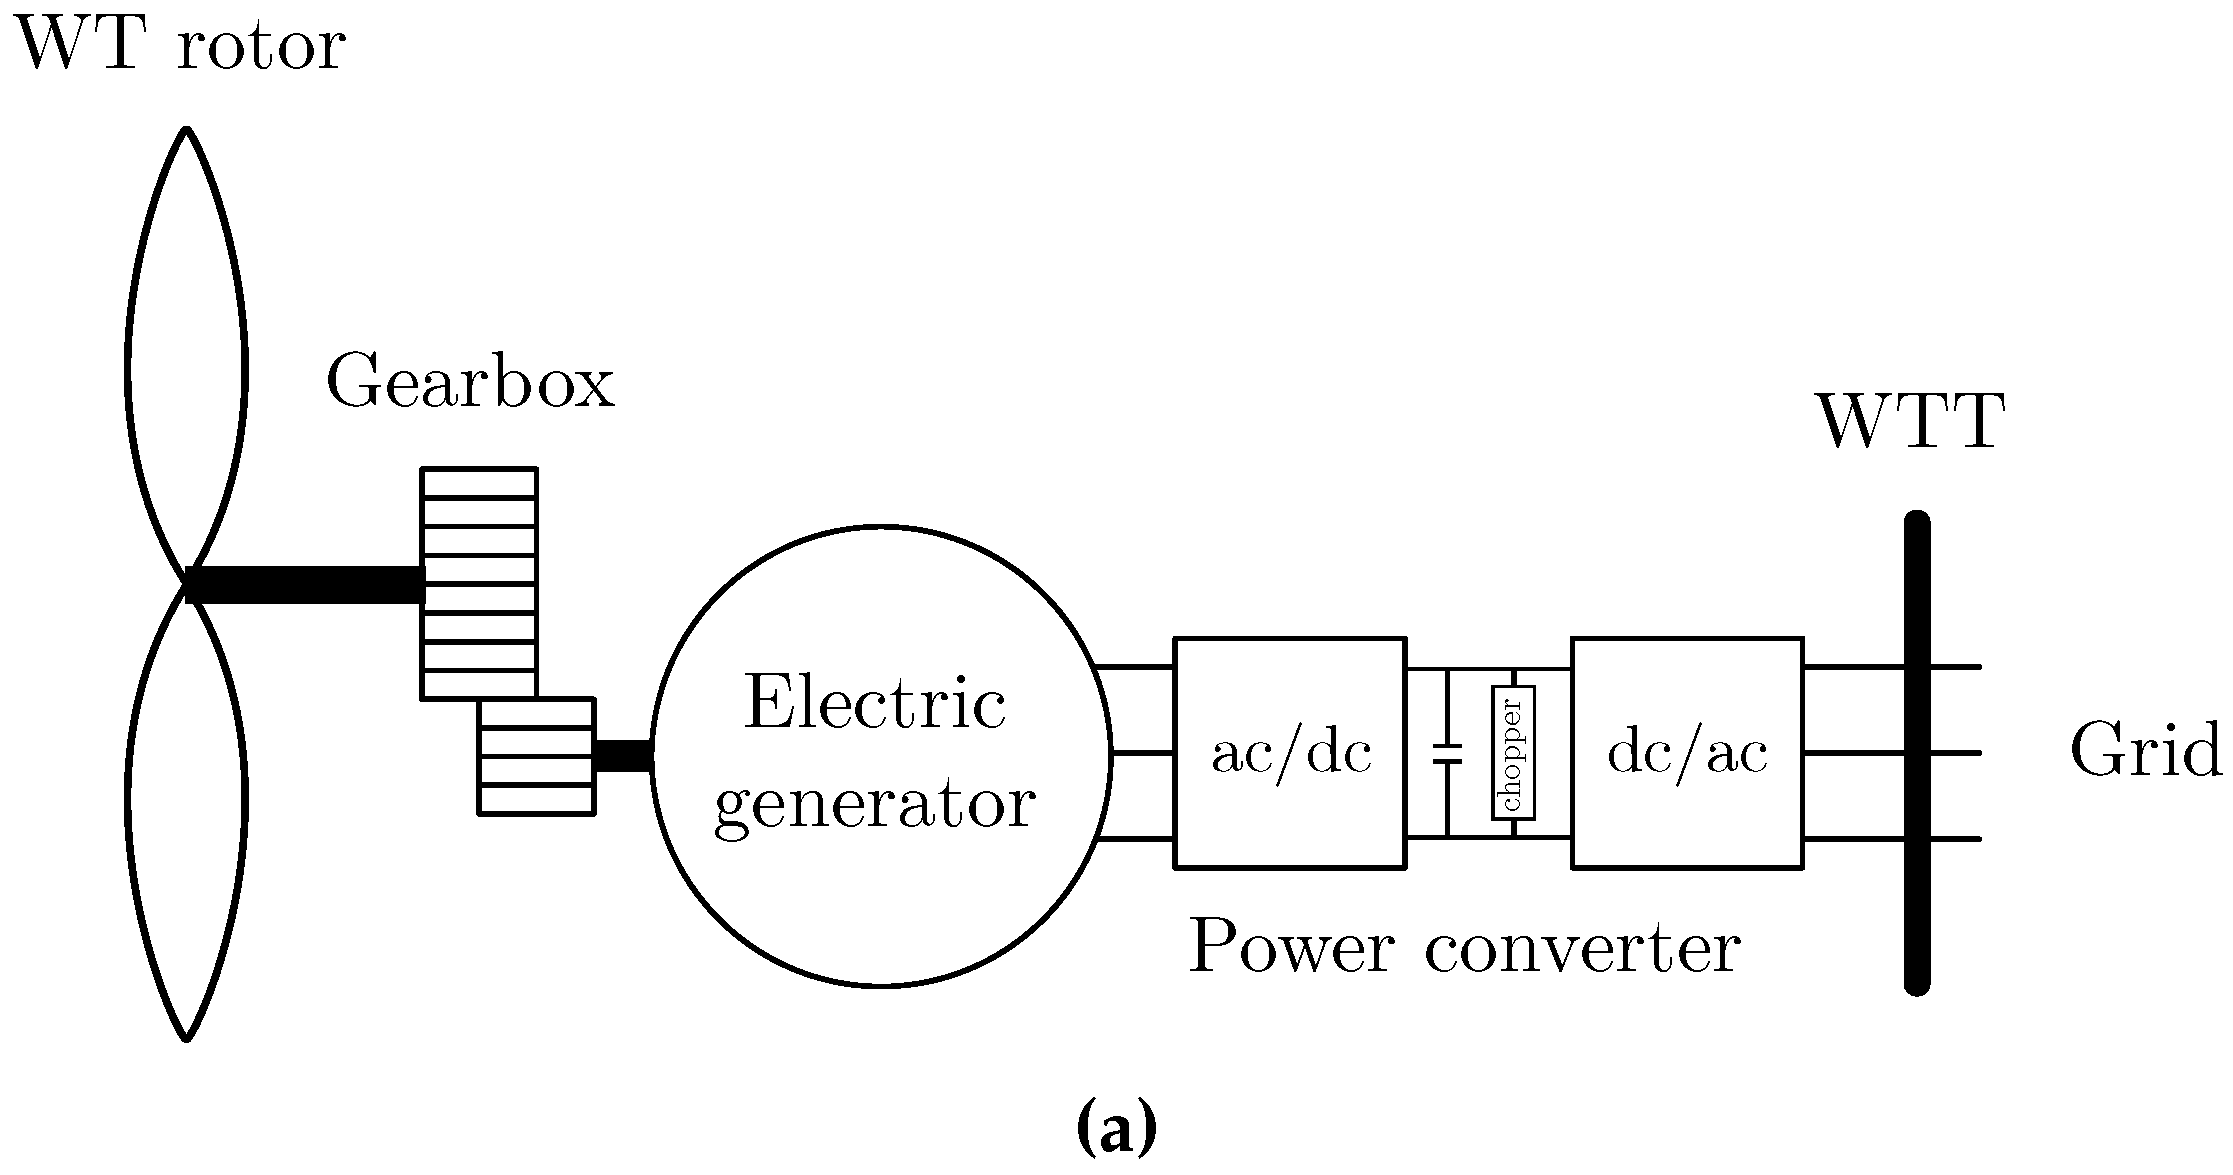 Energies Free Full Text Validation Of Generic Models For Current Generator Diagram Moreover R Circuit 09 01048 G002a